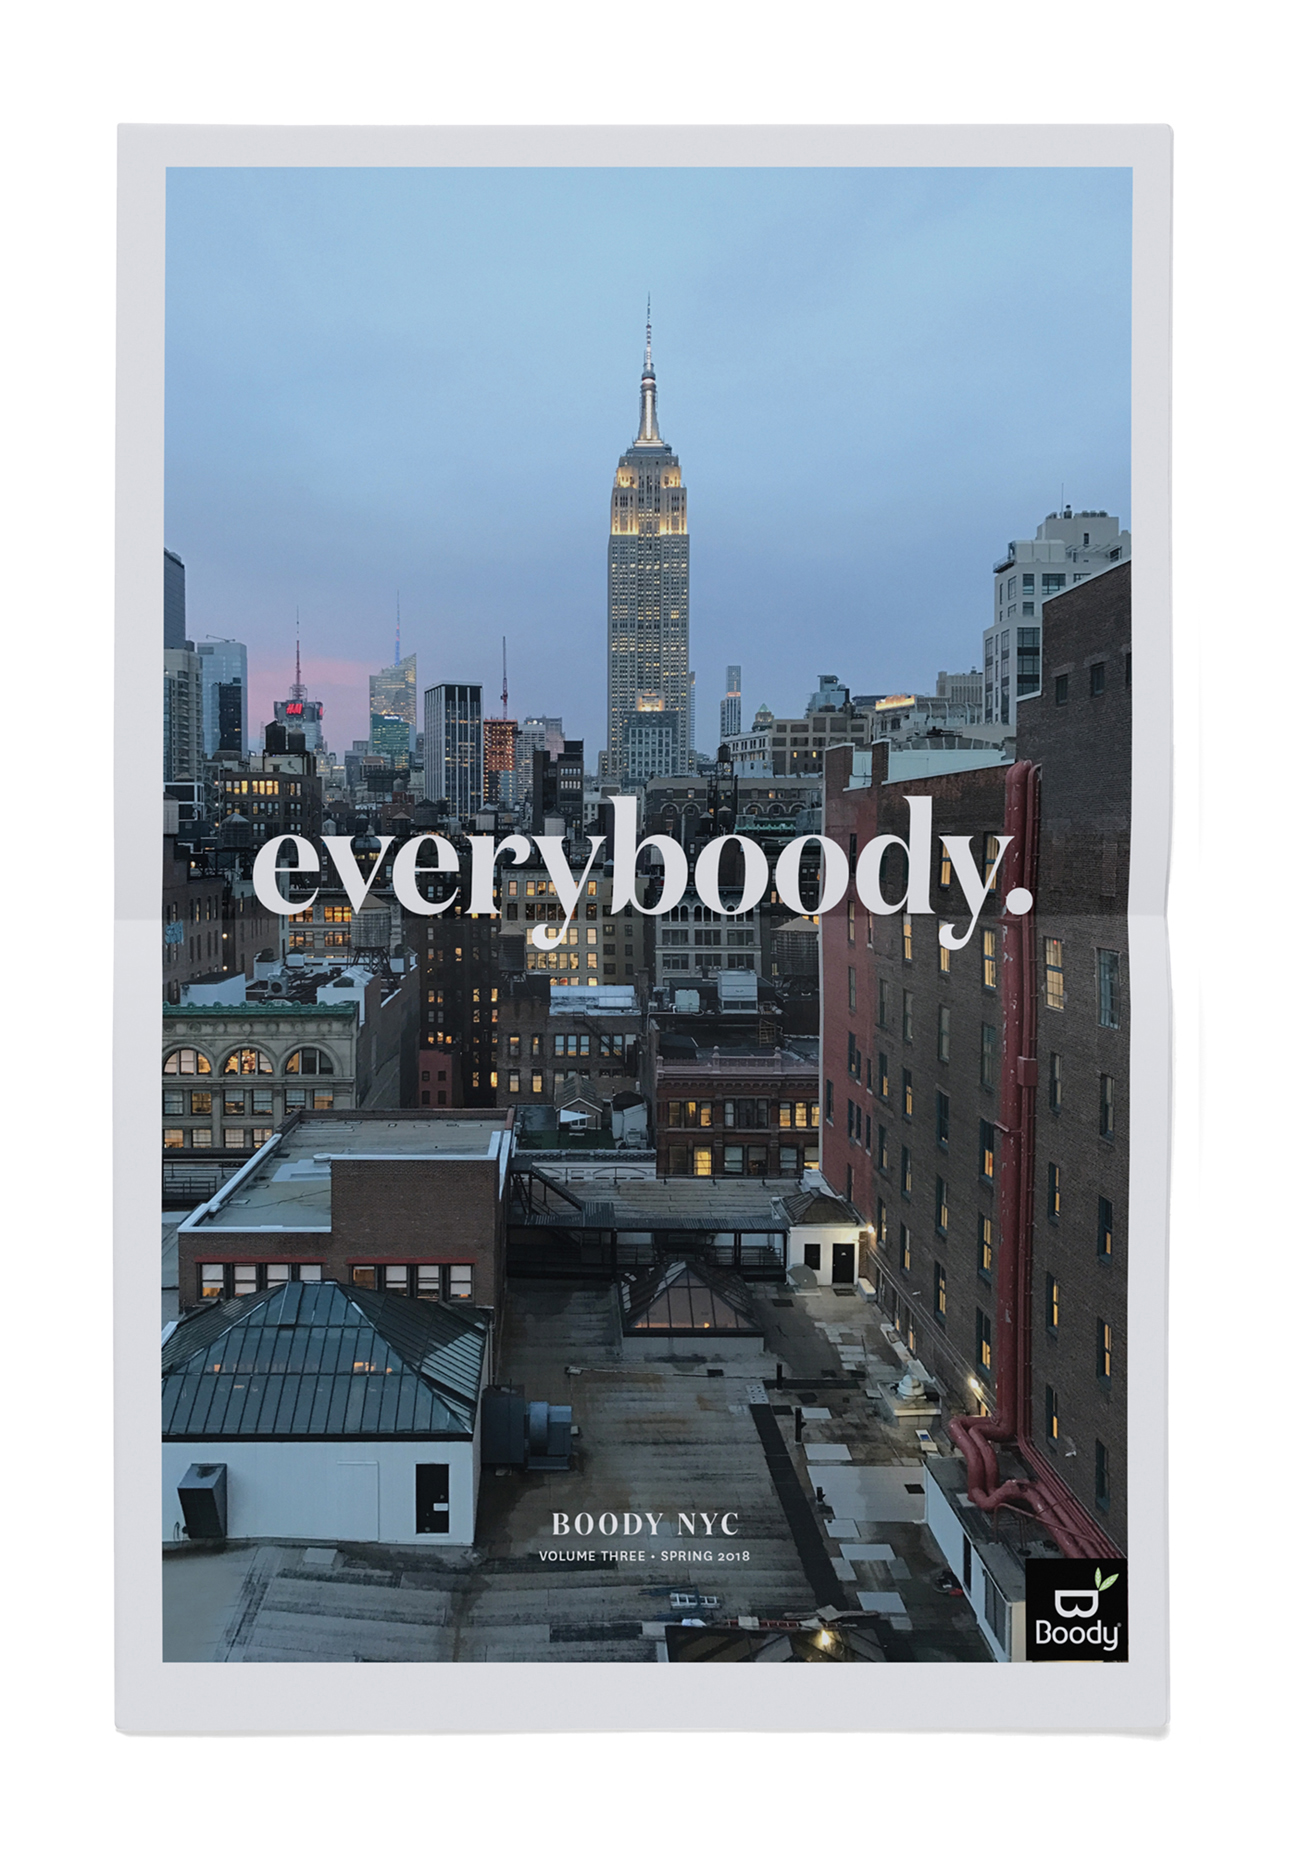 Look Book - Front Cover / 24 page newsprint